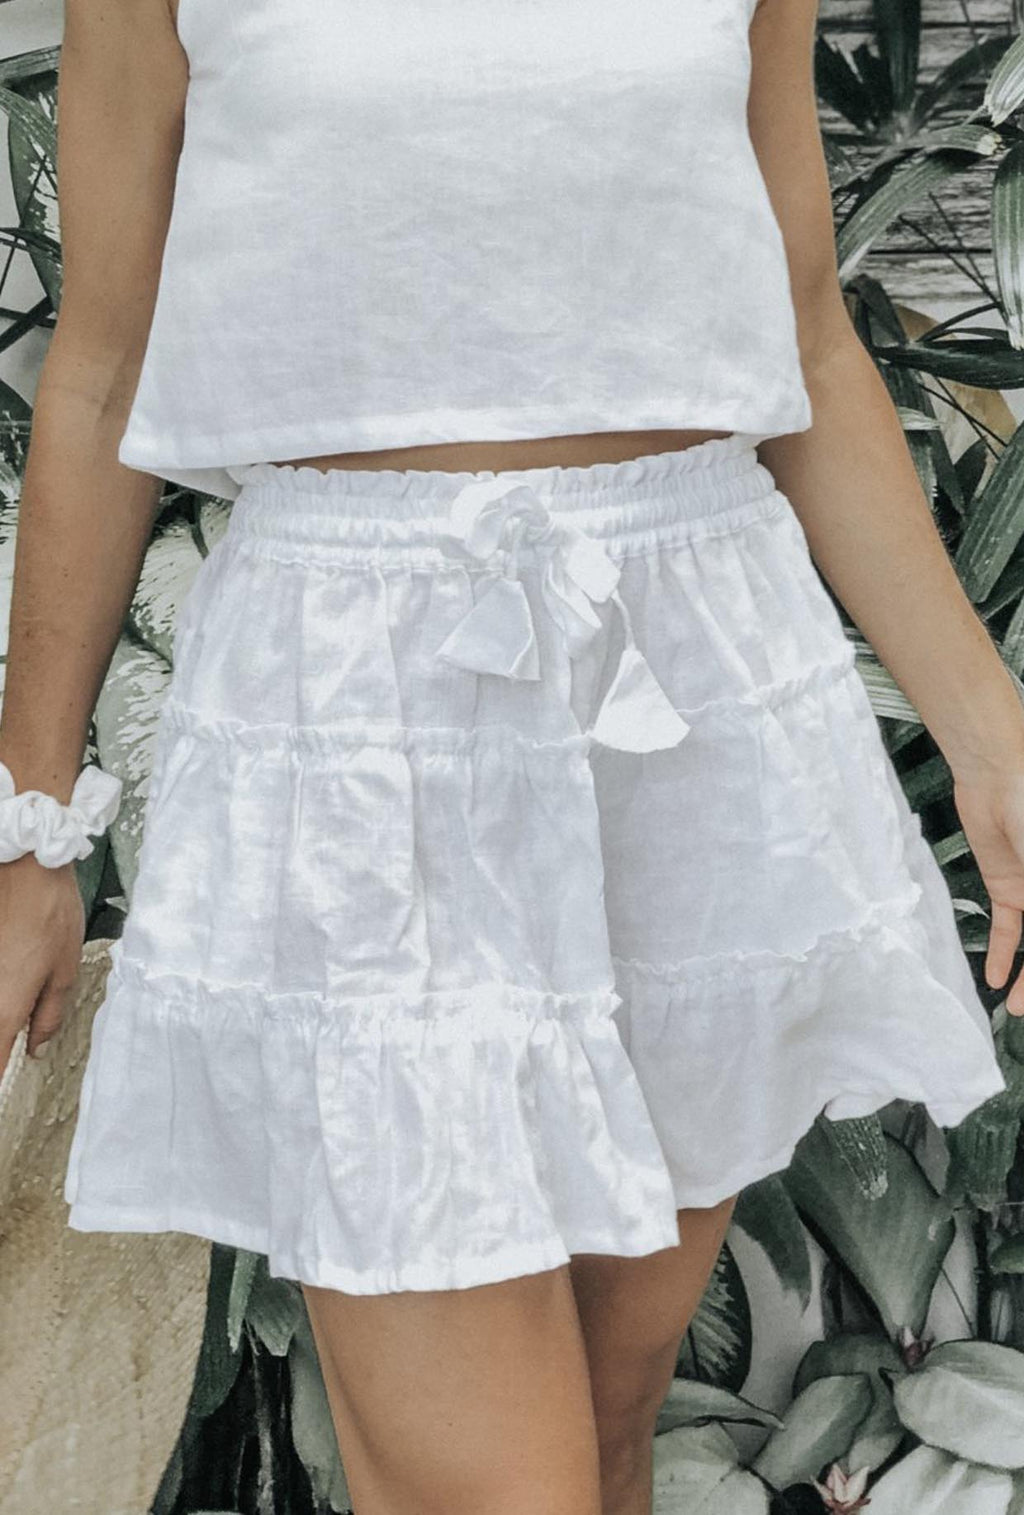 LJC Designs Zanzibar Skirt in White